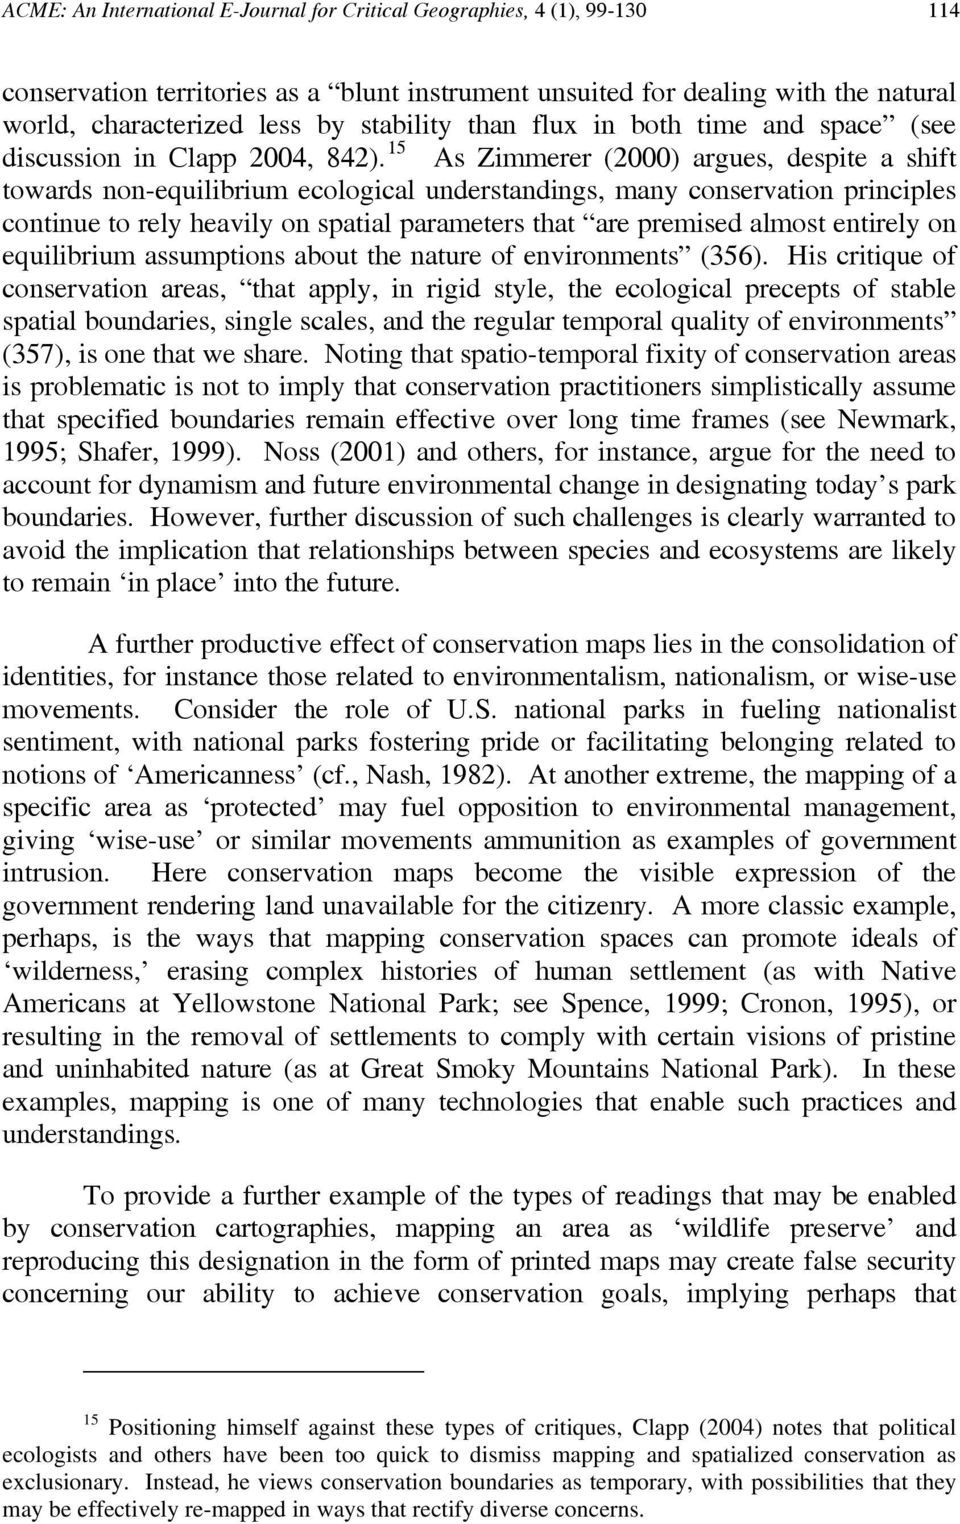 15 As Zimmerer (2000) argues, despite a shift towards non-equilibrium ecological understandings, many conservation principles continue to rely heavily on spatial parameters that are premised almost